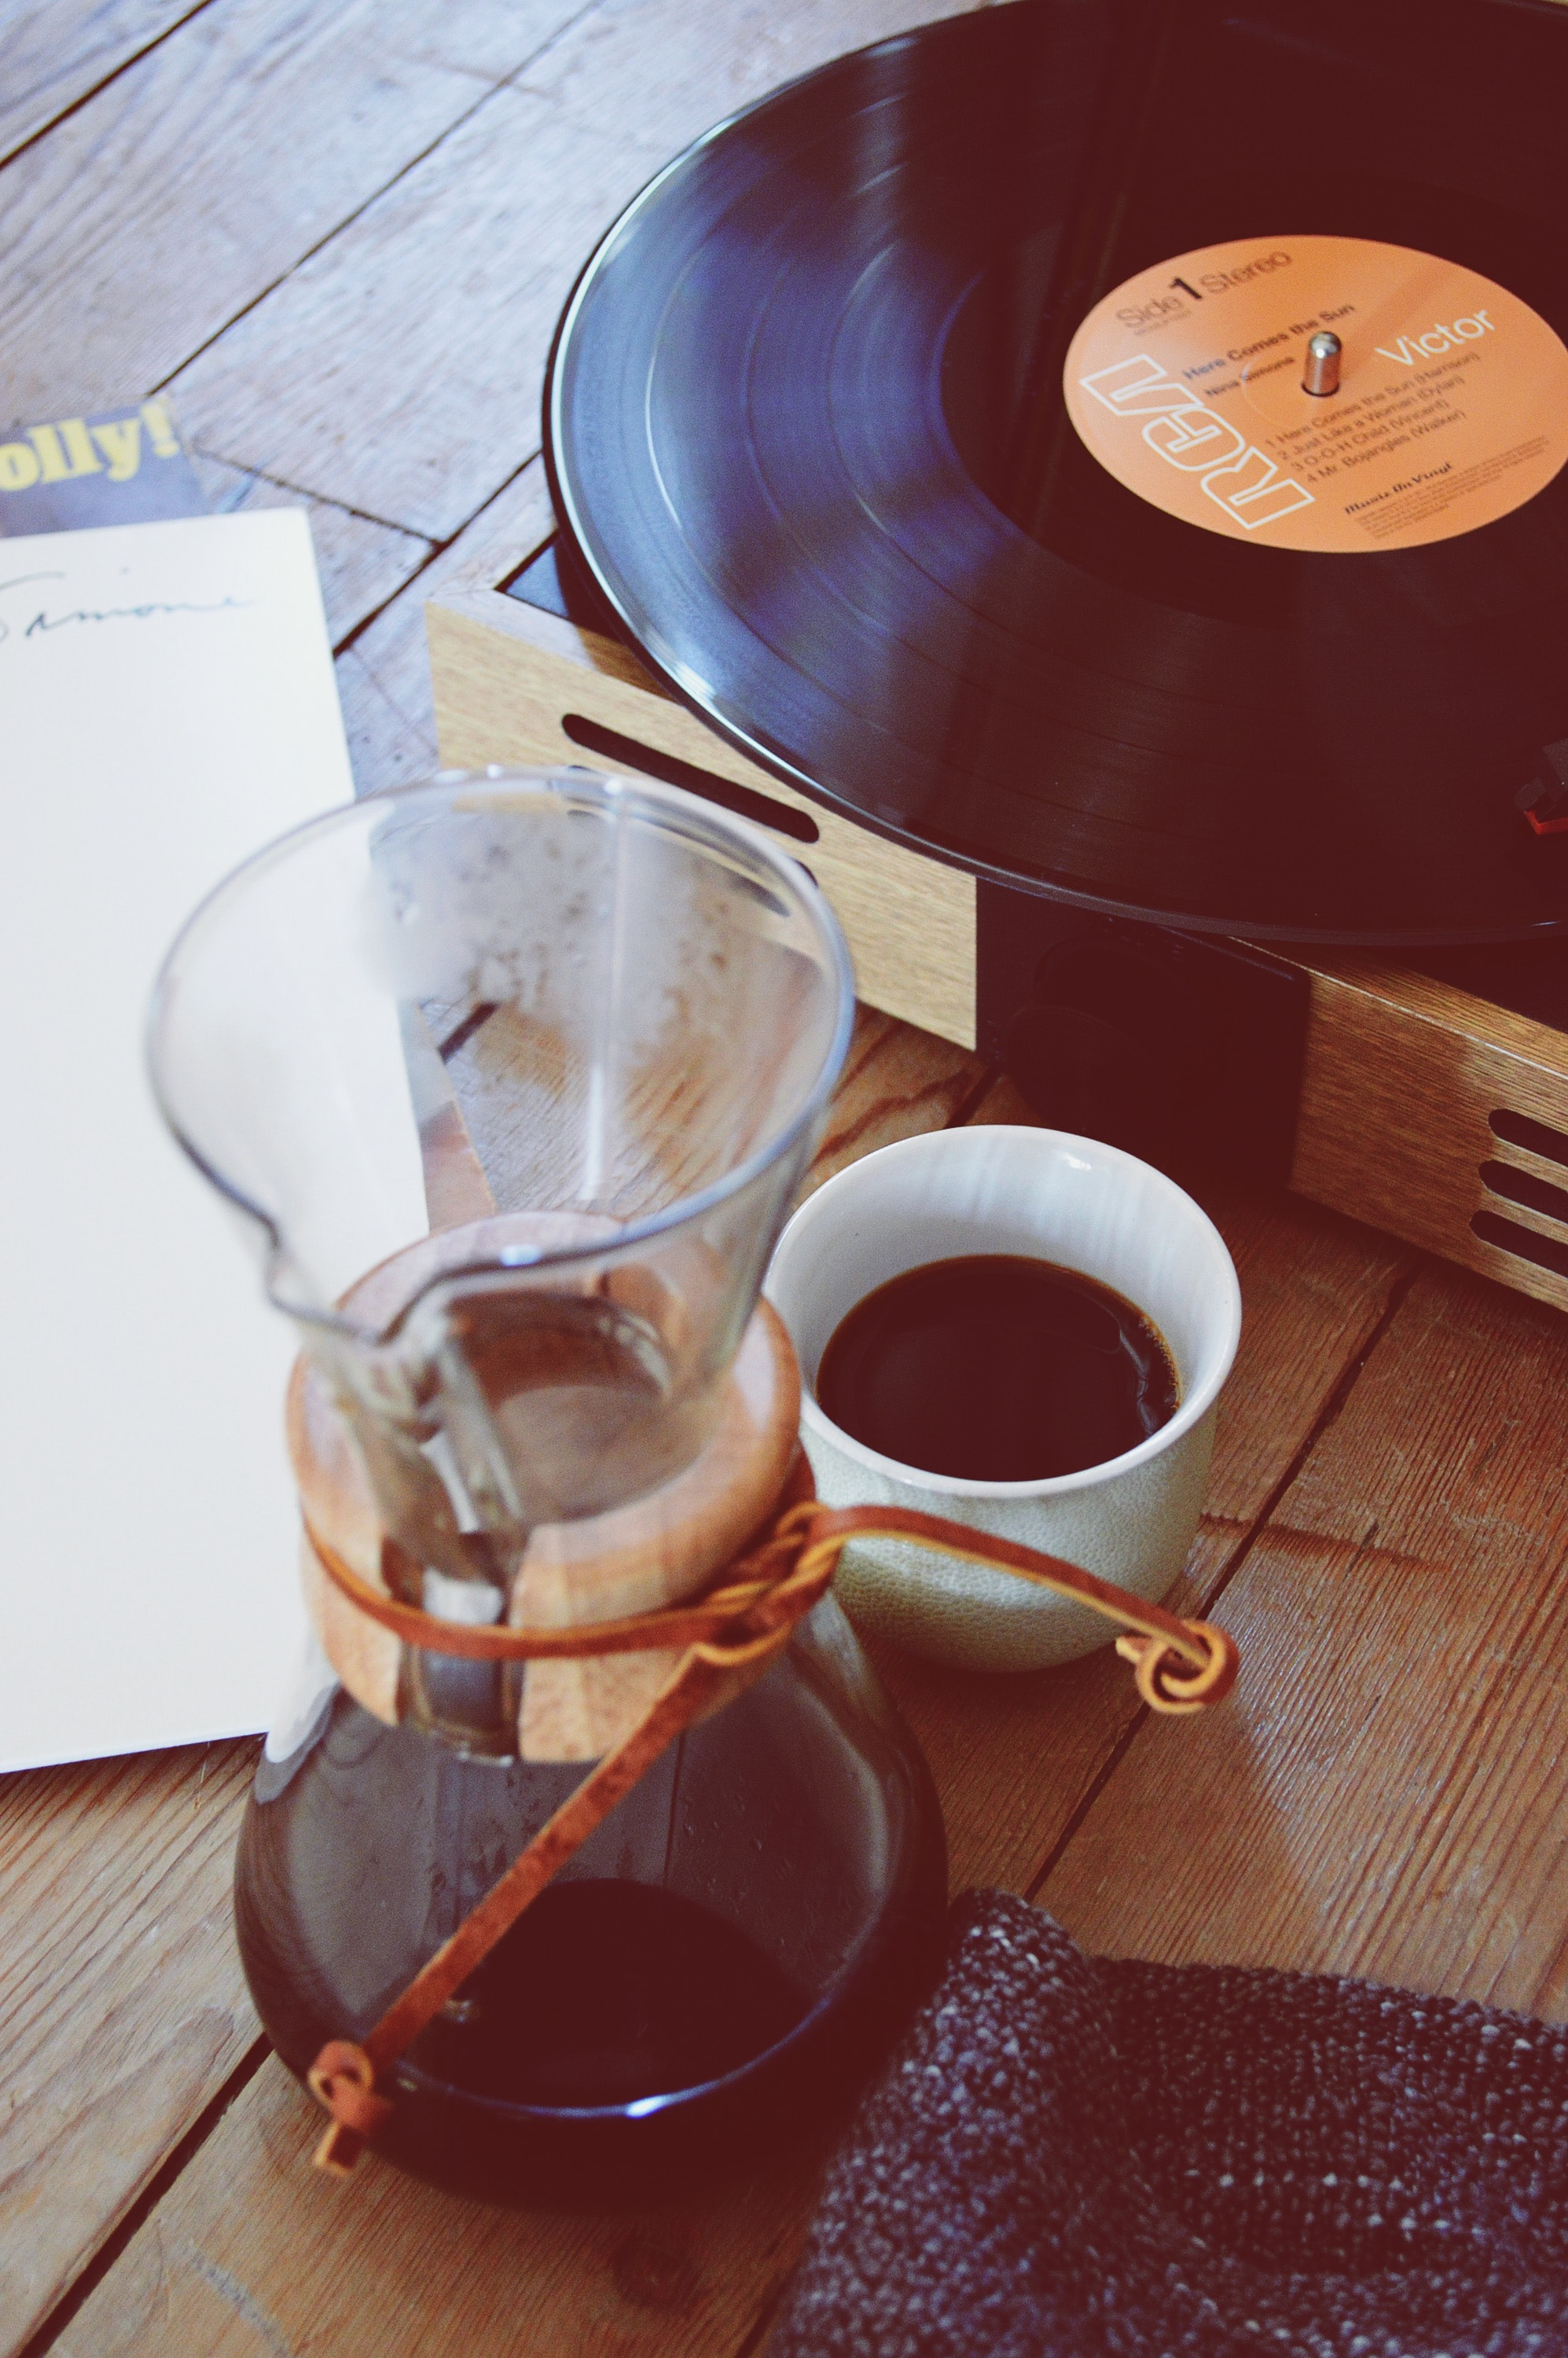 Coffee Record Music And Vinyl Record Hd Photo By Andrei